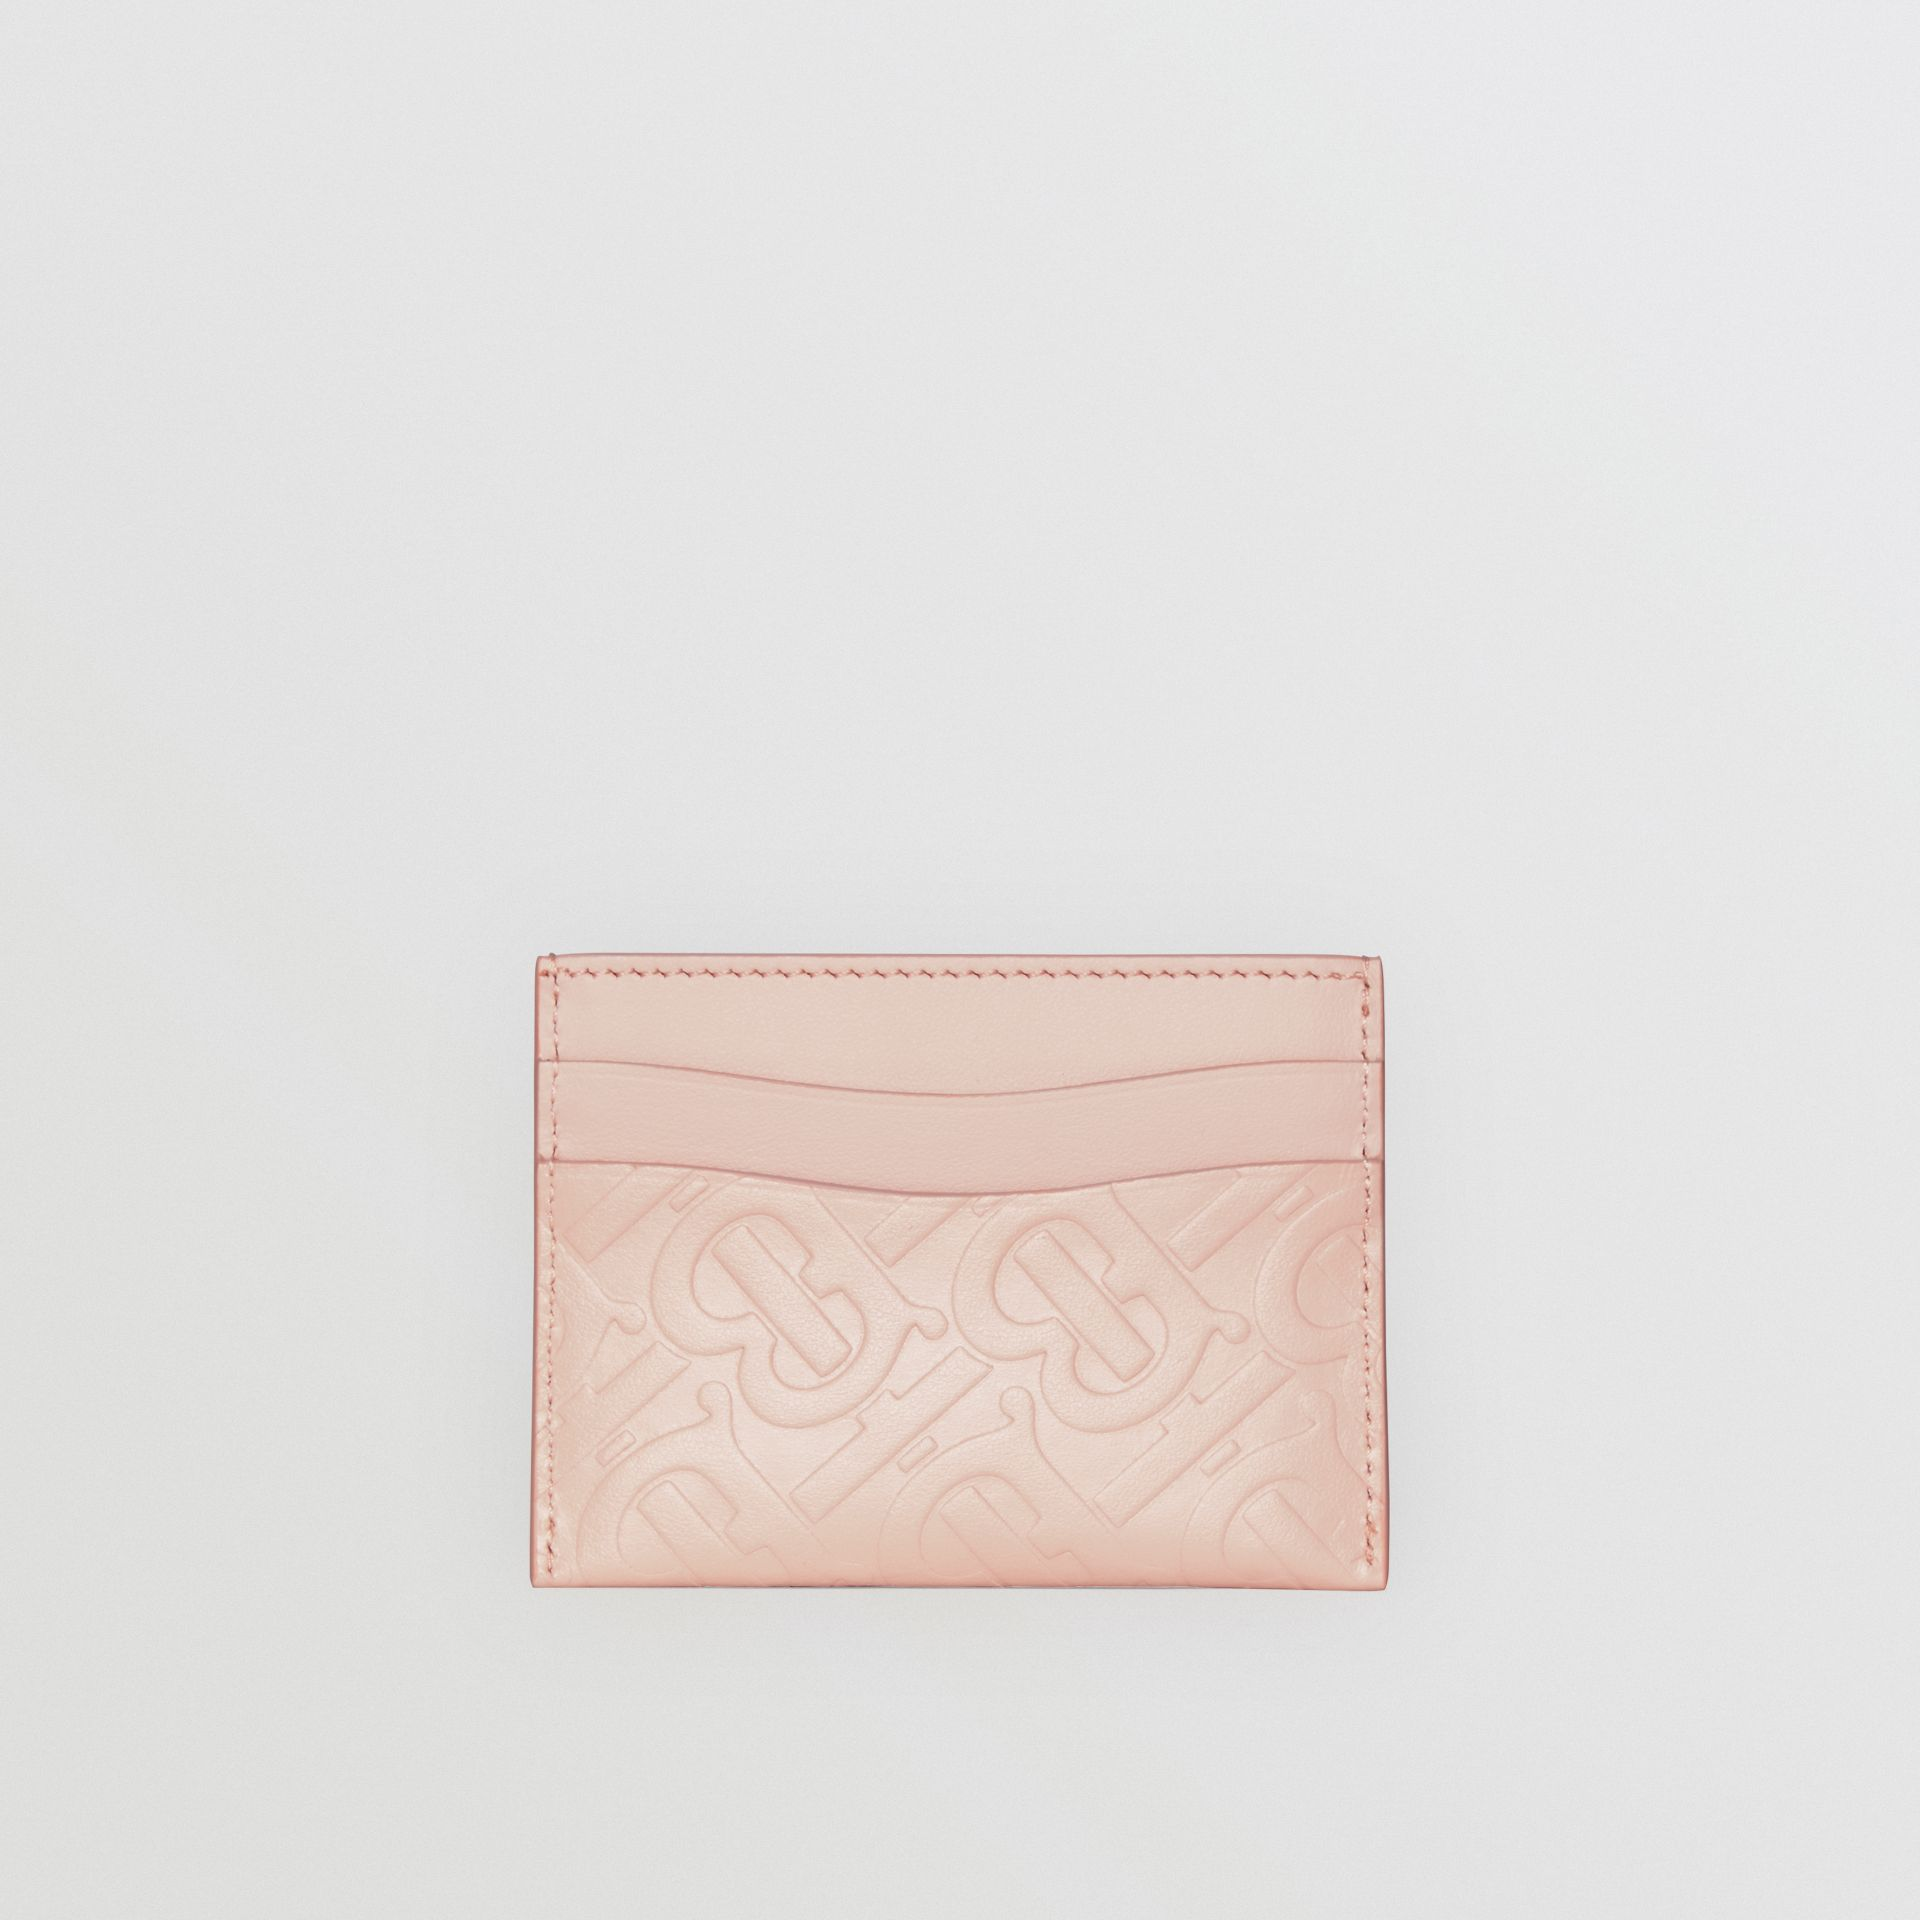 Monogram Leather Card Case in Rose Beige - Women | Burberry - gallery image 4